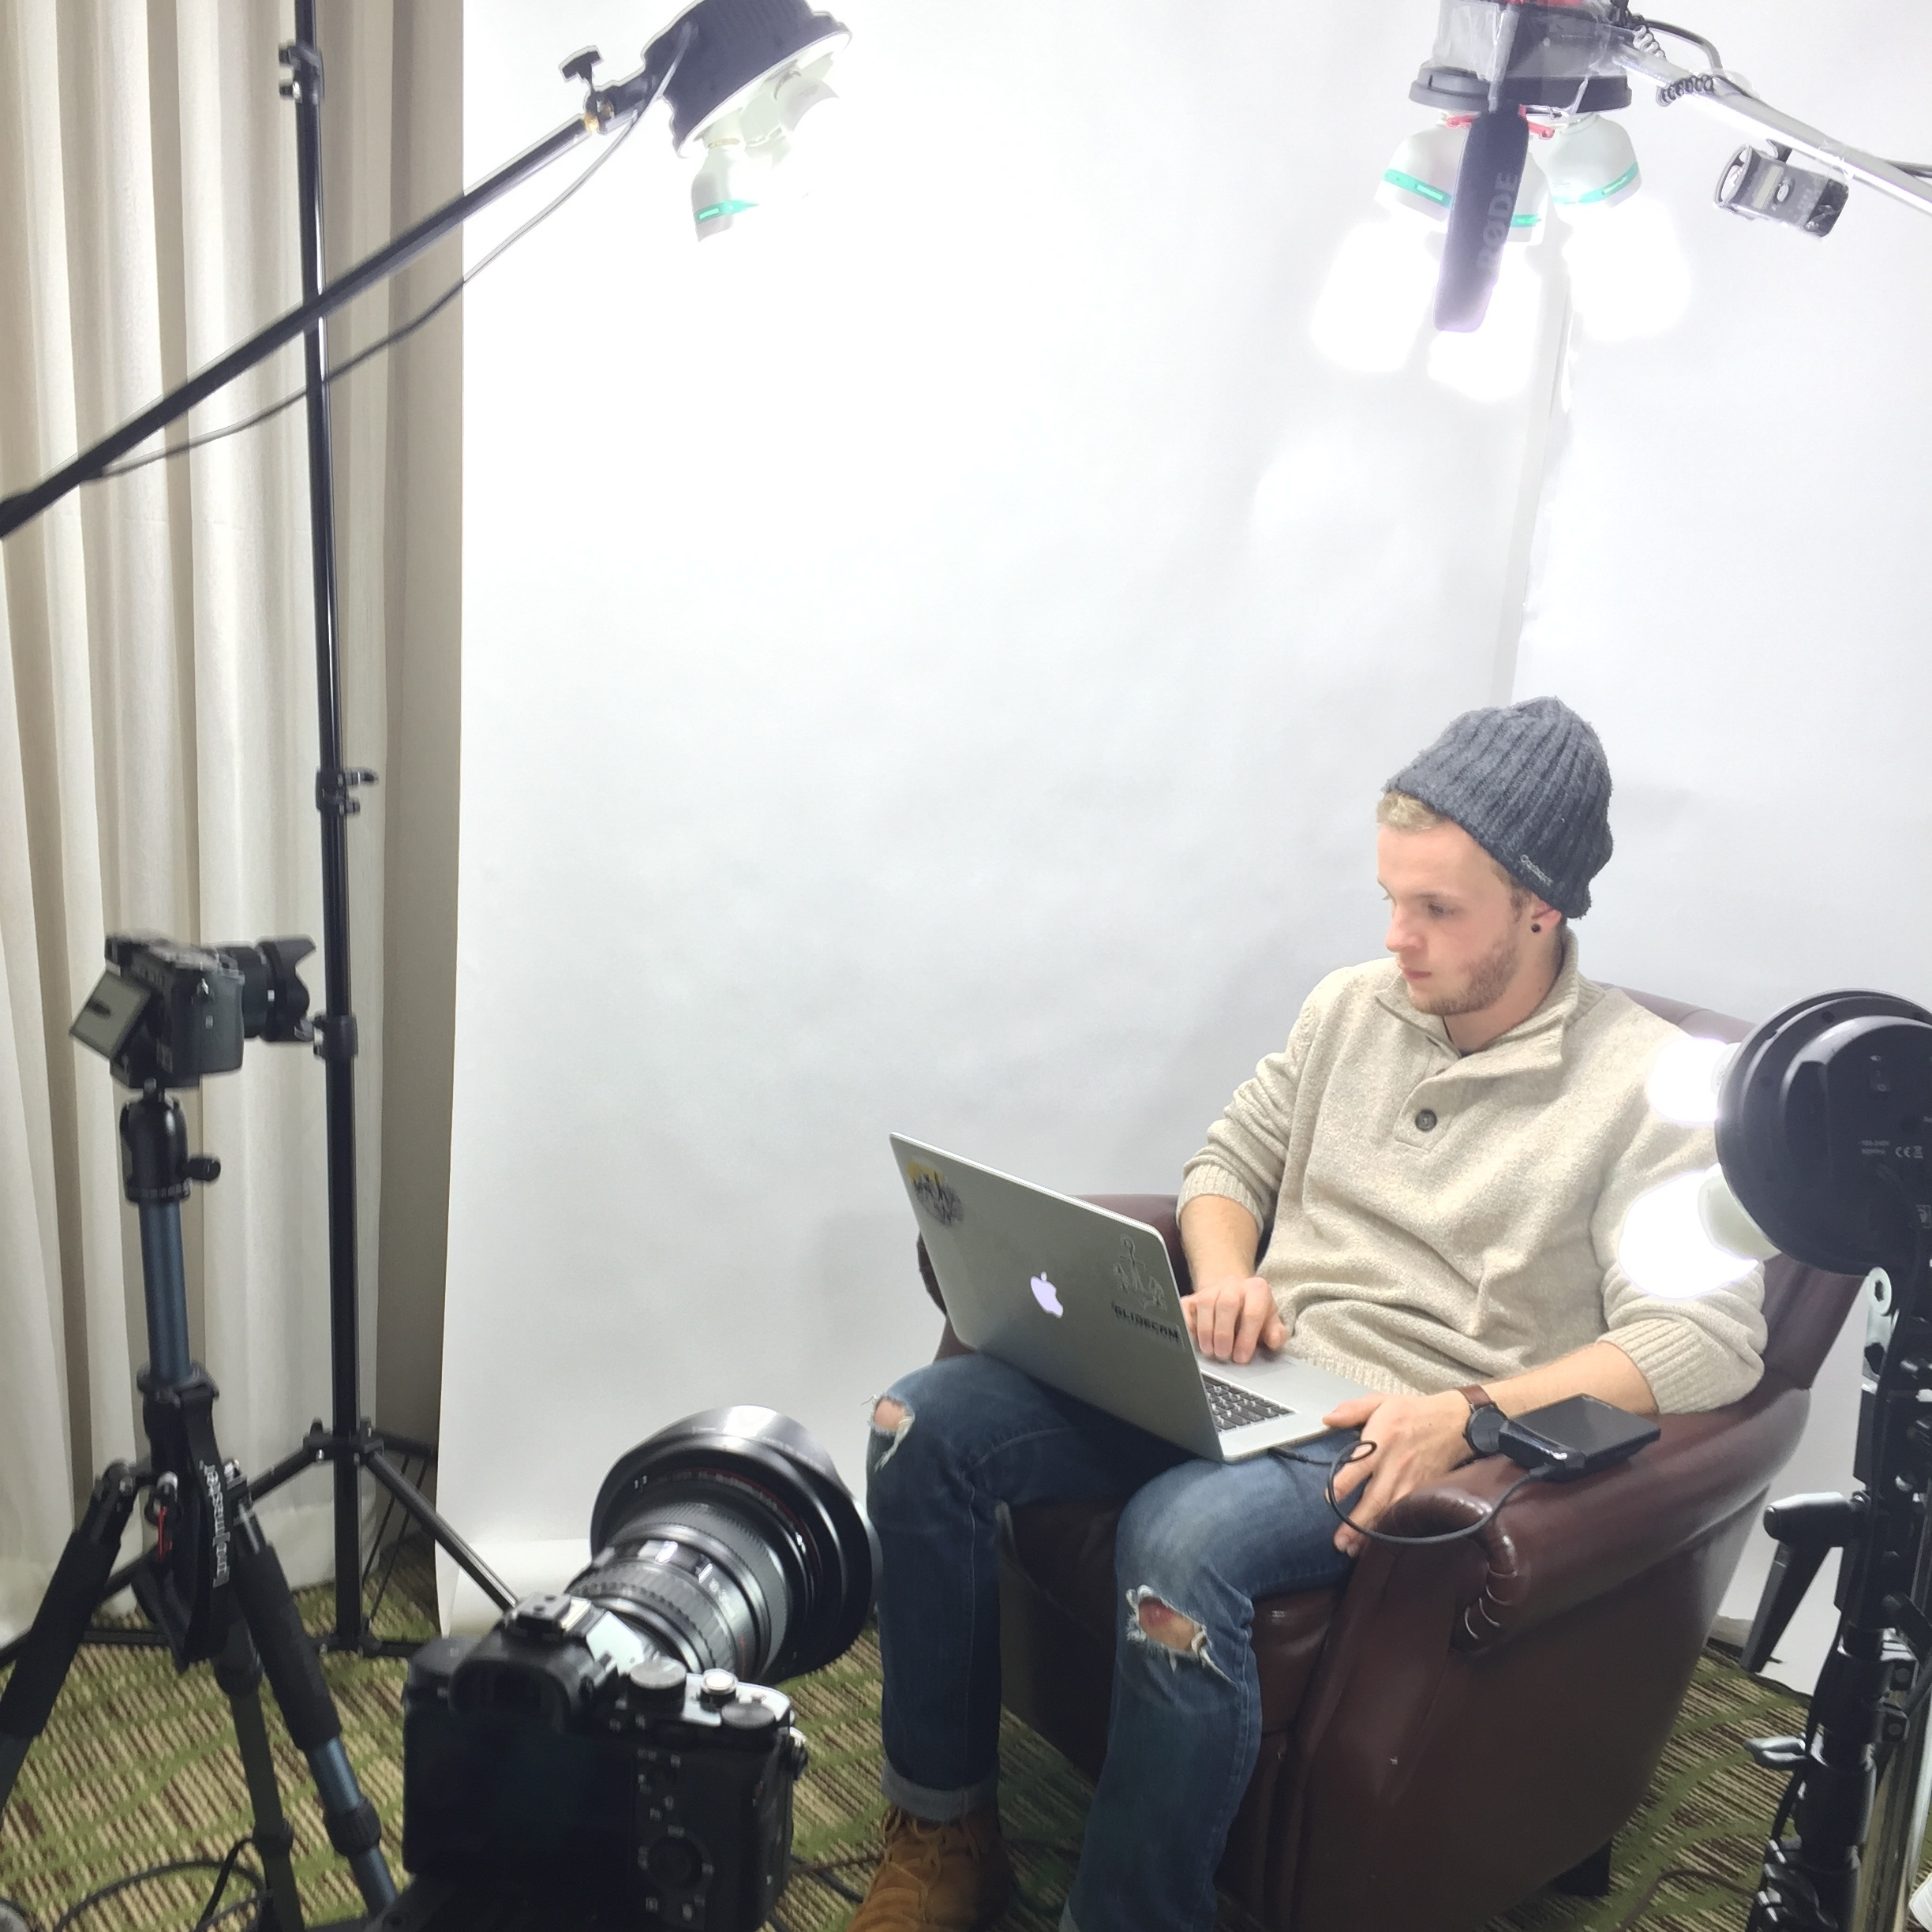 Our film director, Aidan, testing the light and getting some work done.